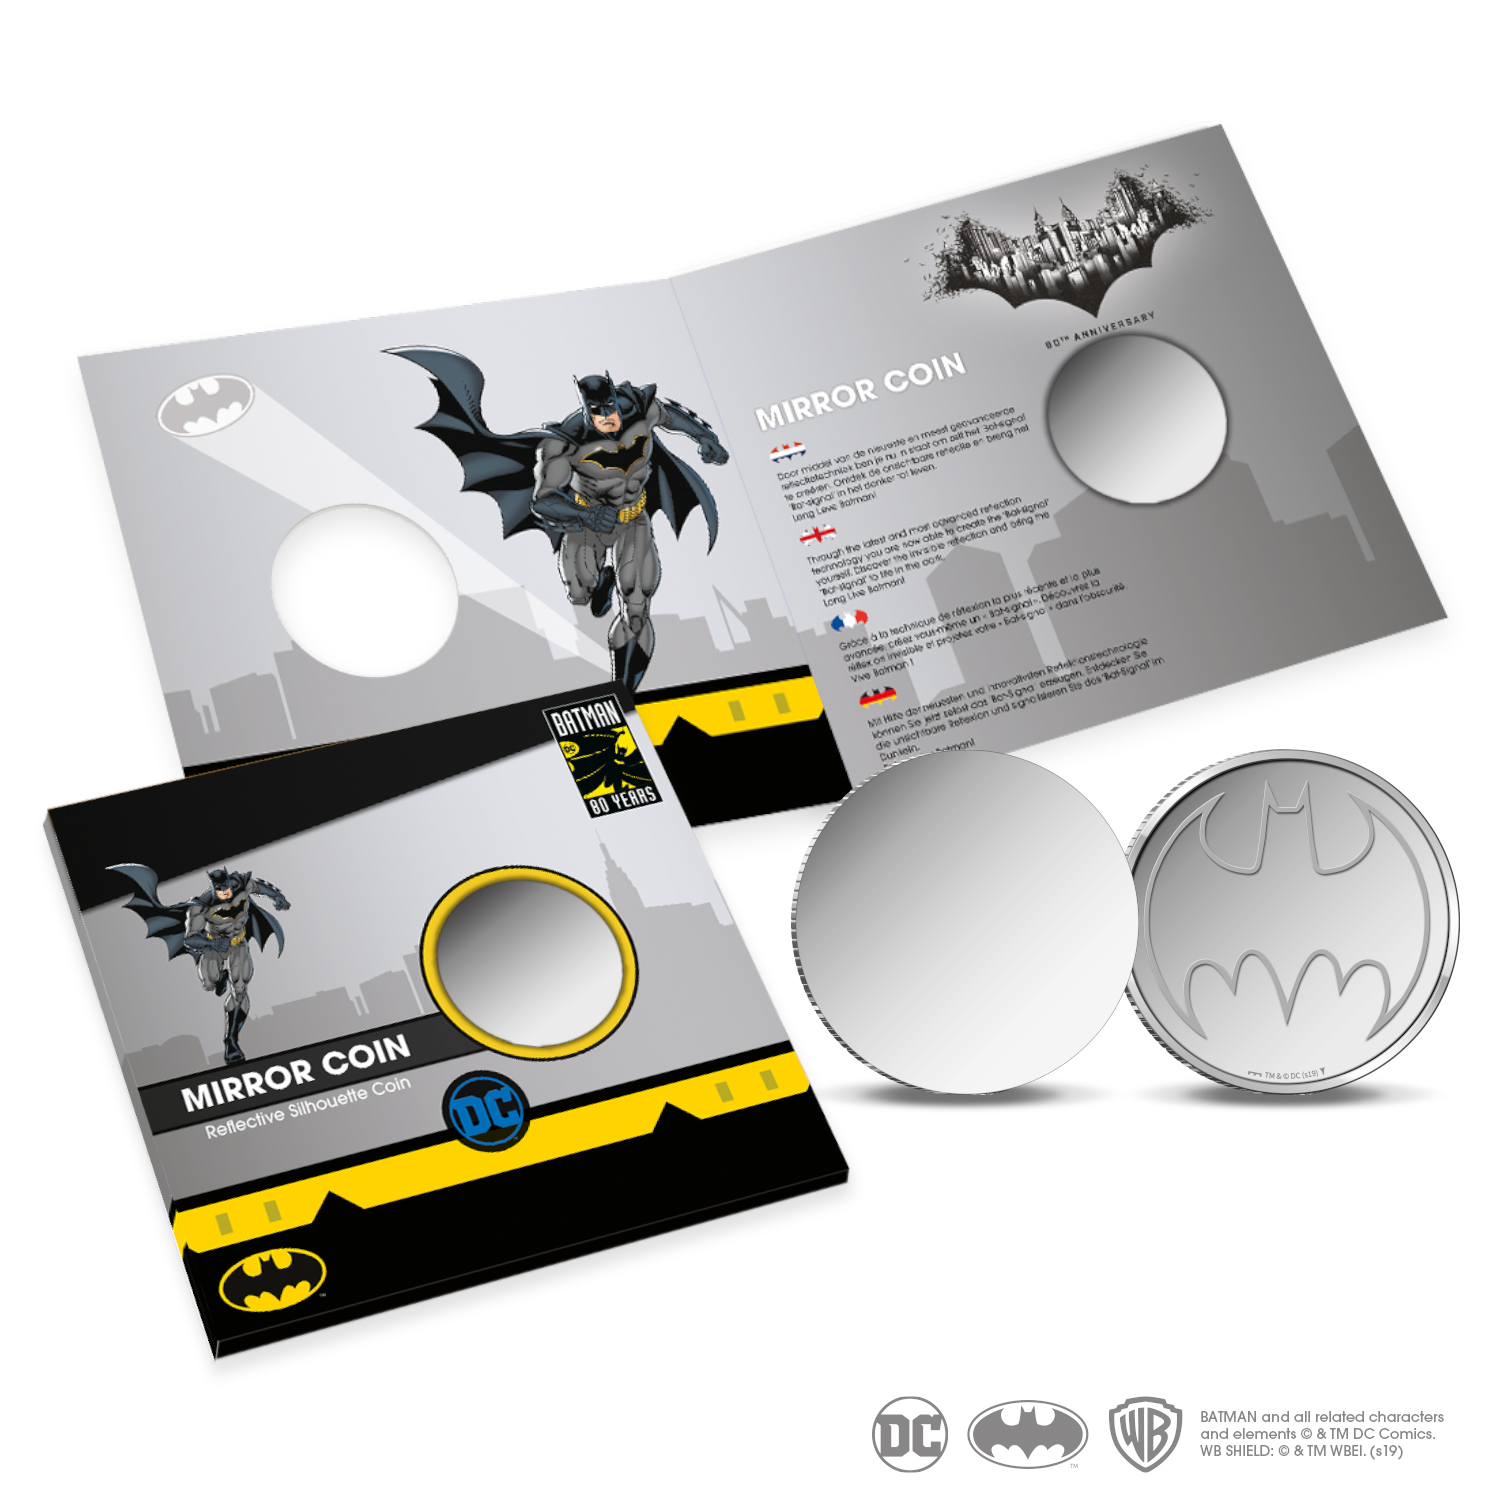 Batman Mirror Coin Bat-Signal Royal Dutch Mint Coins